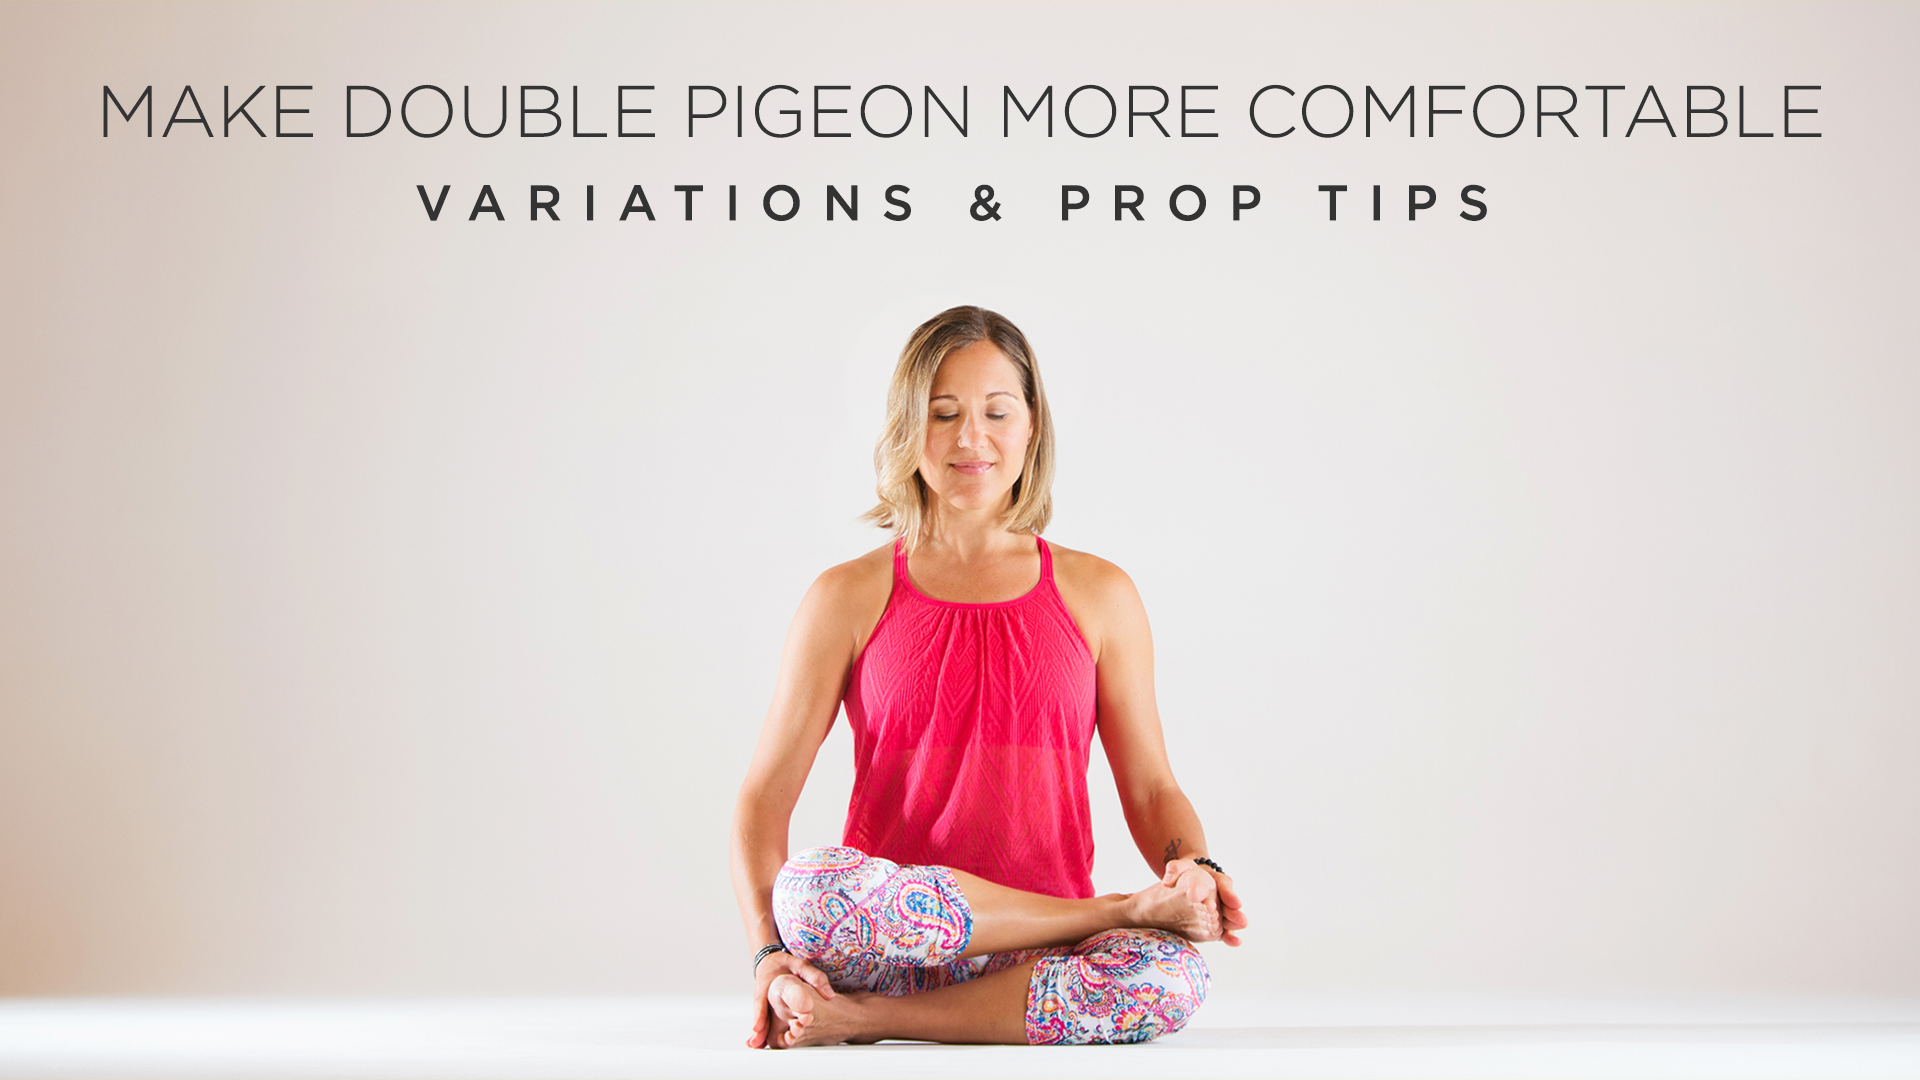 Make Double Pigeon More Comfortable Variations And Prop Tips